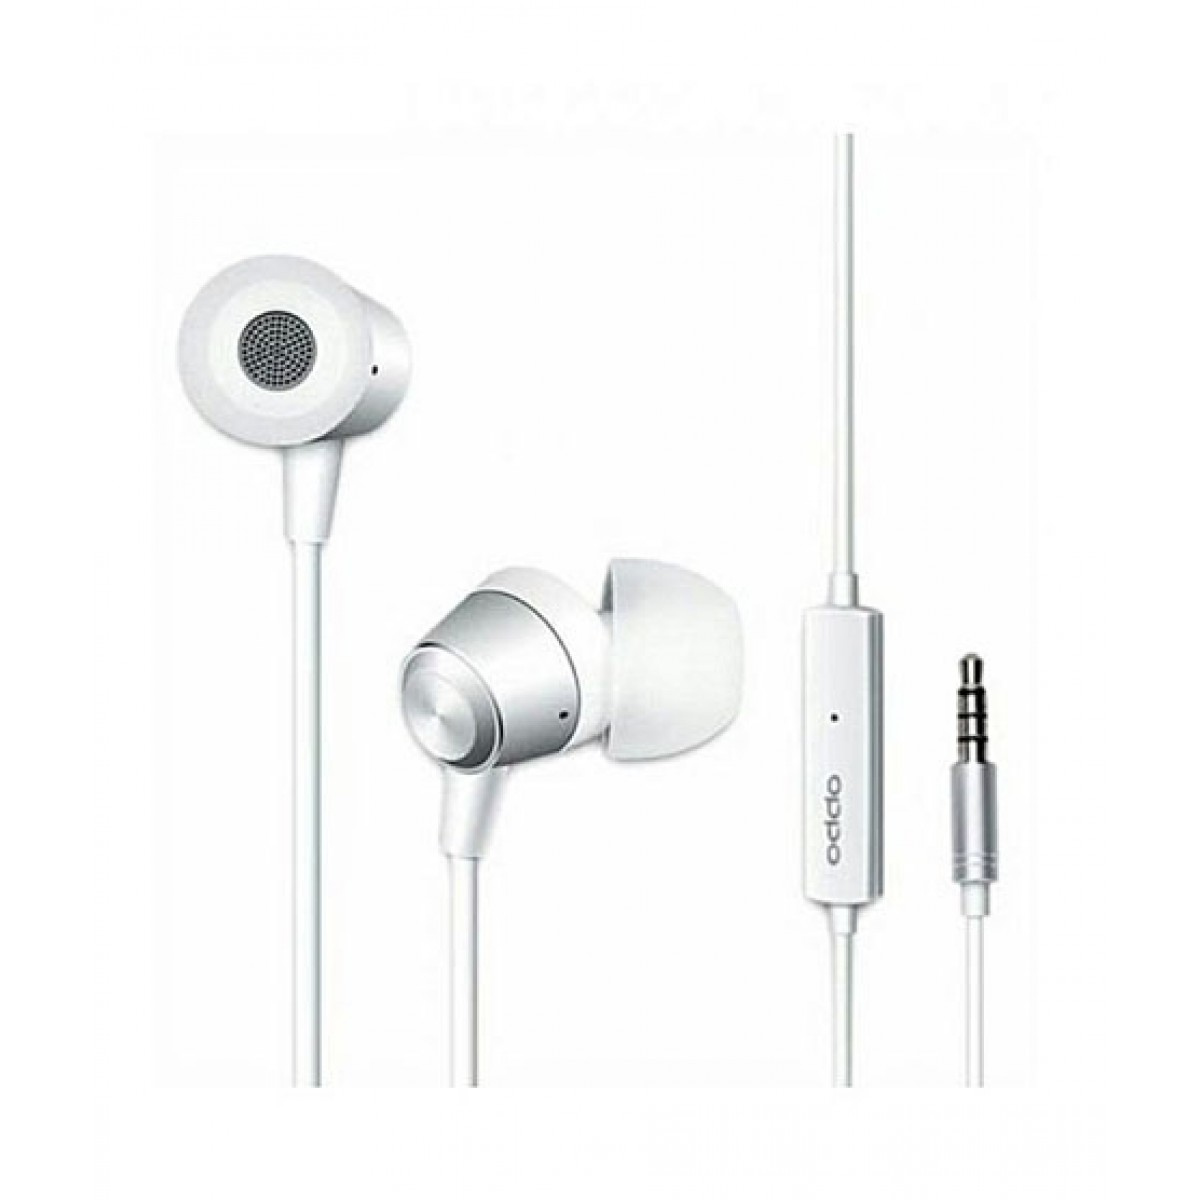 Oppo Earphone For All Smartphones Price In Pakistan Buy Oppo Earphone For All Smartphones M1347 Ishopping Pk